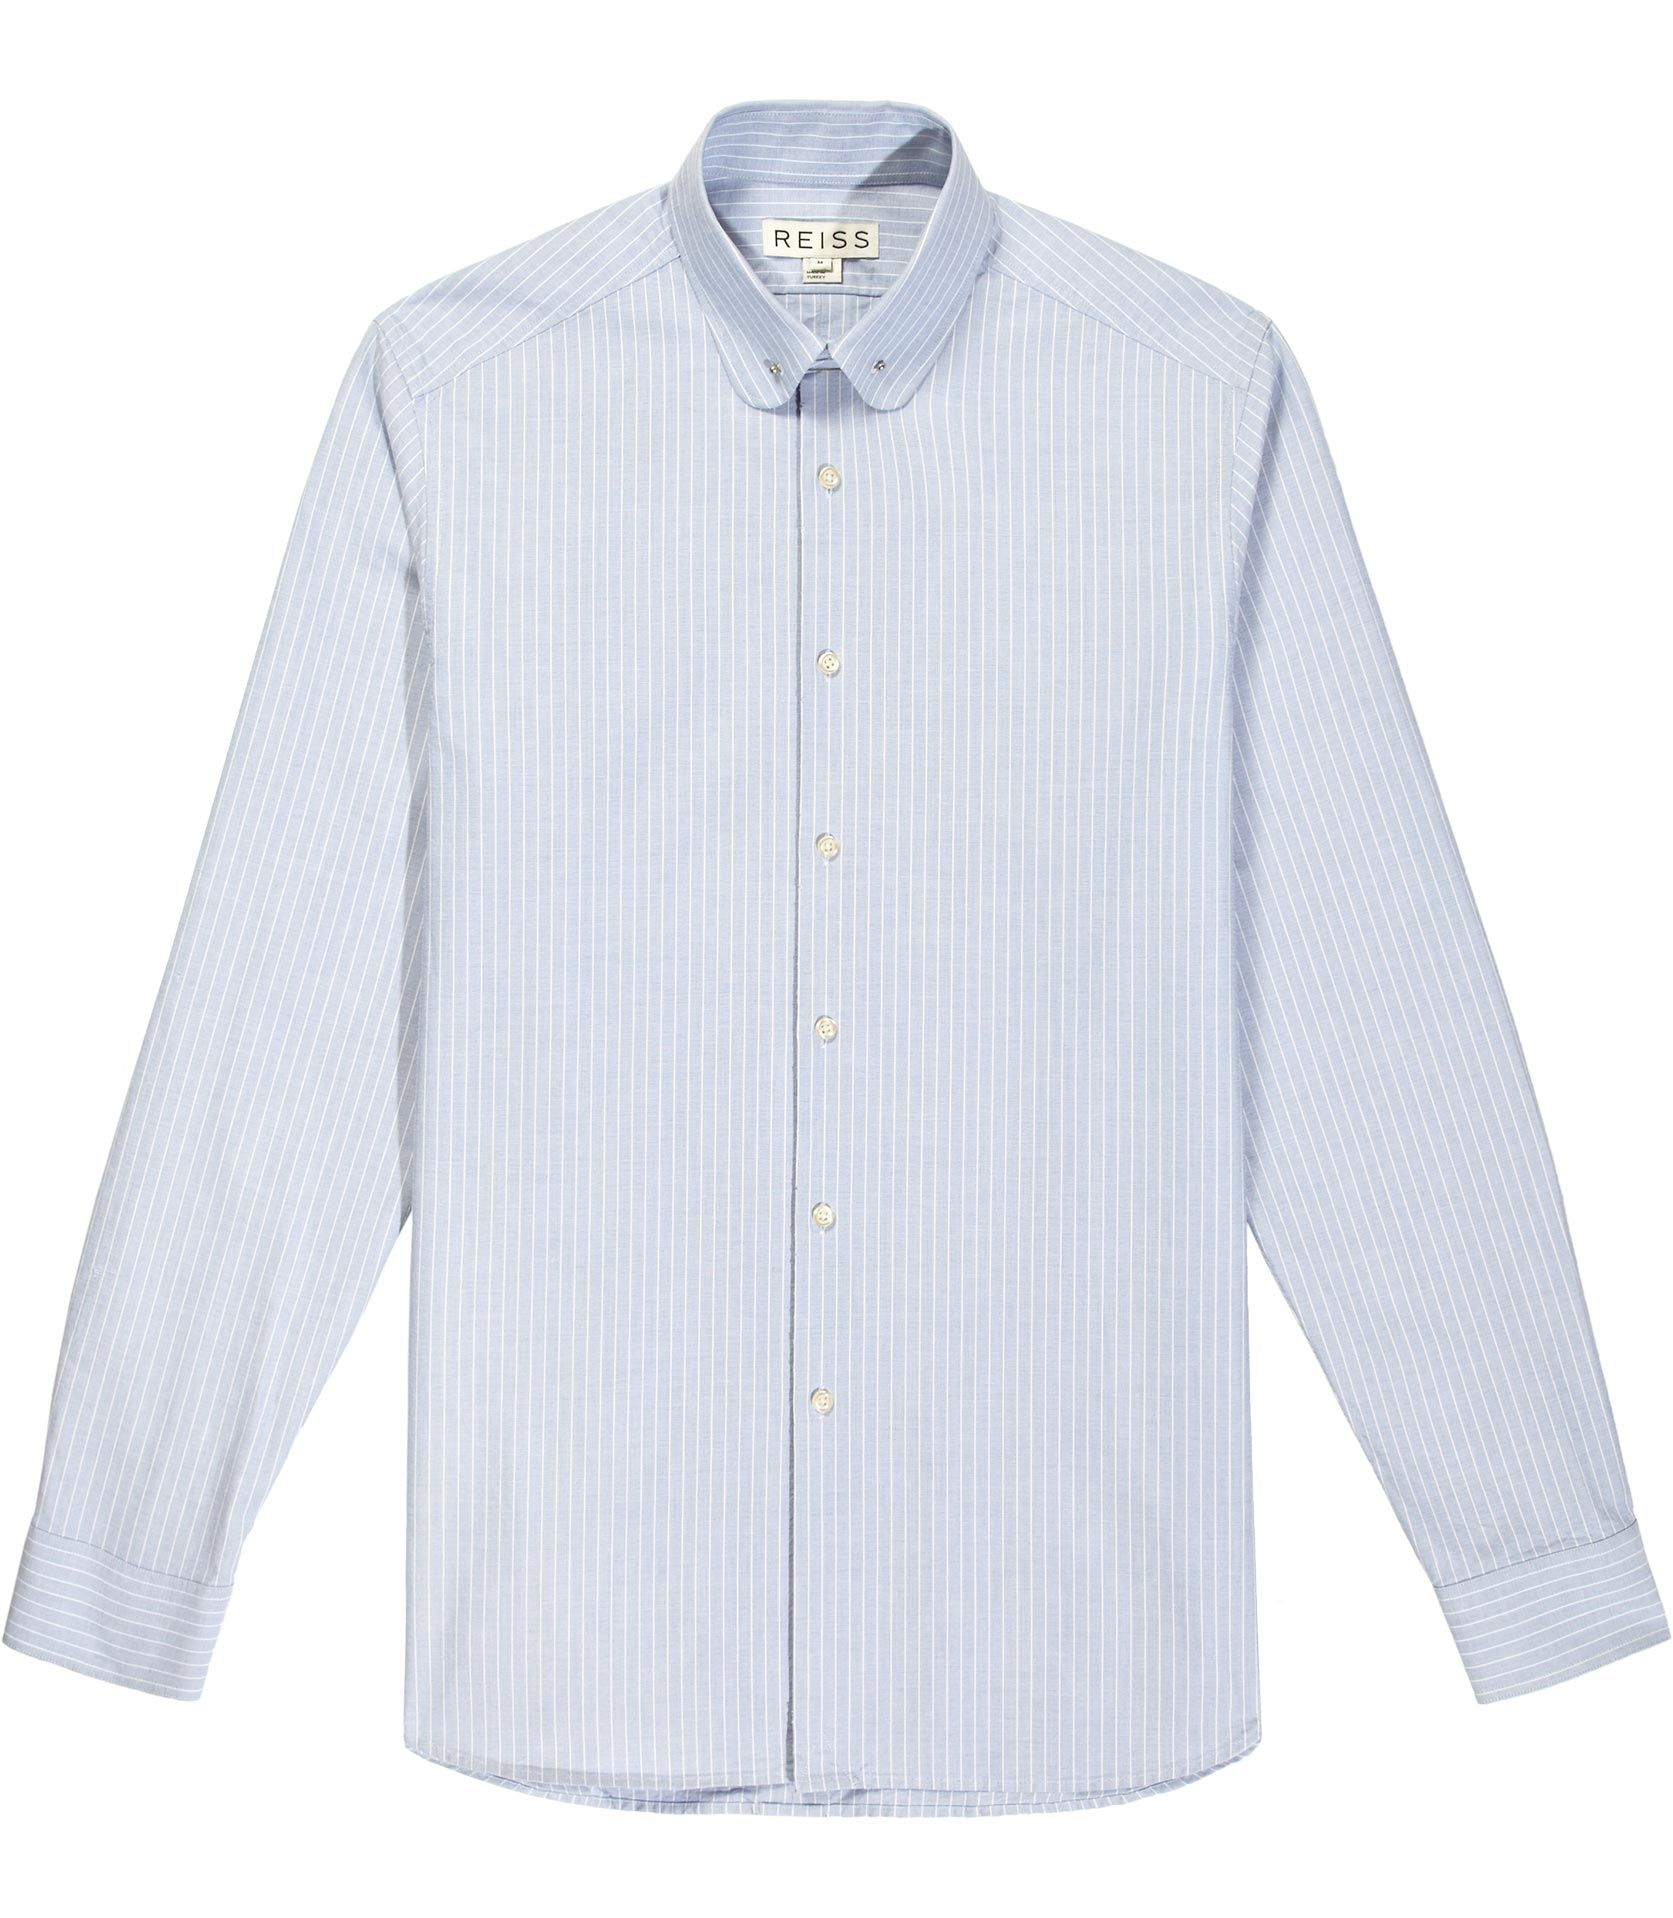 Boston Blue Wide Stripe Collar Bar Shirt  Reiss | Shirts in Cuffs And Collars Boston